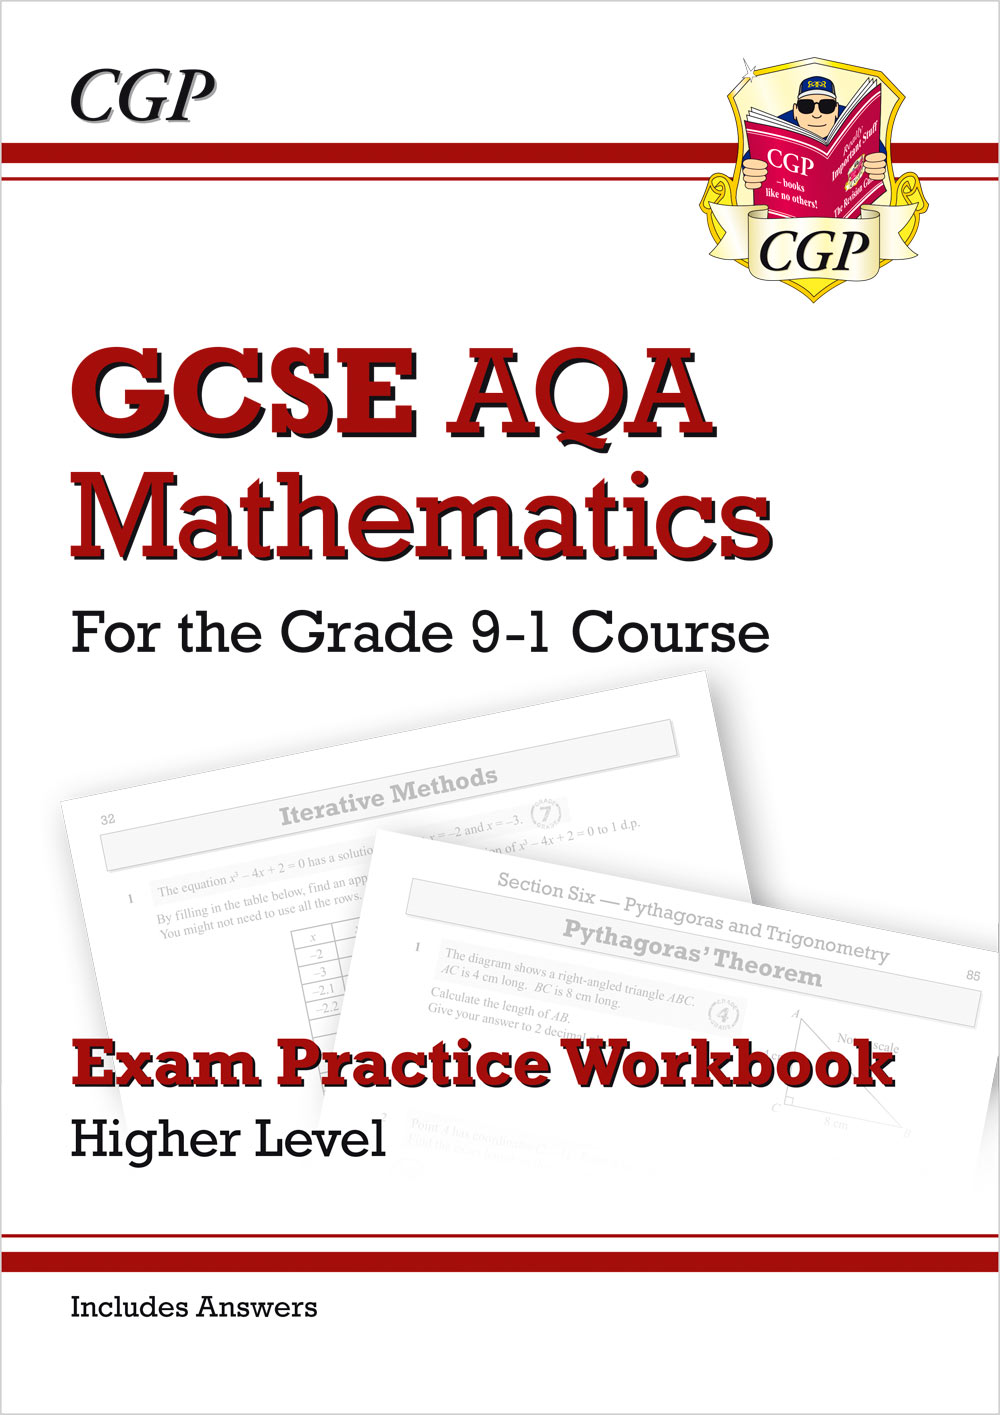 MQHQ42 - GCSE Maths AQA Exam Practice Workbook: Higher - for the Grade 9-1 Course (includes Answers)